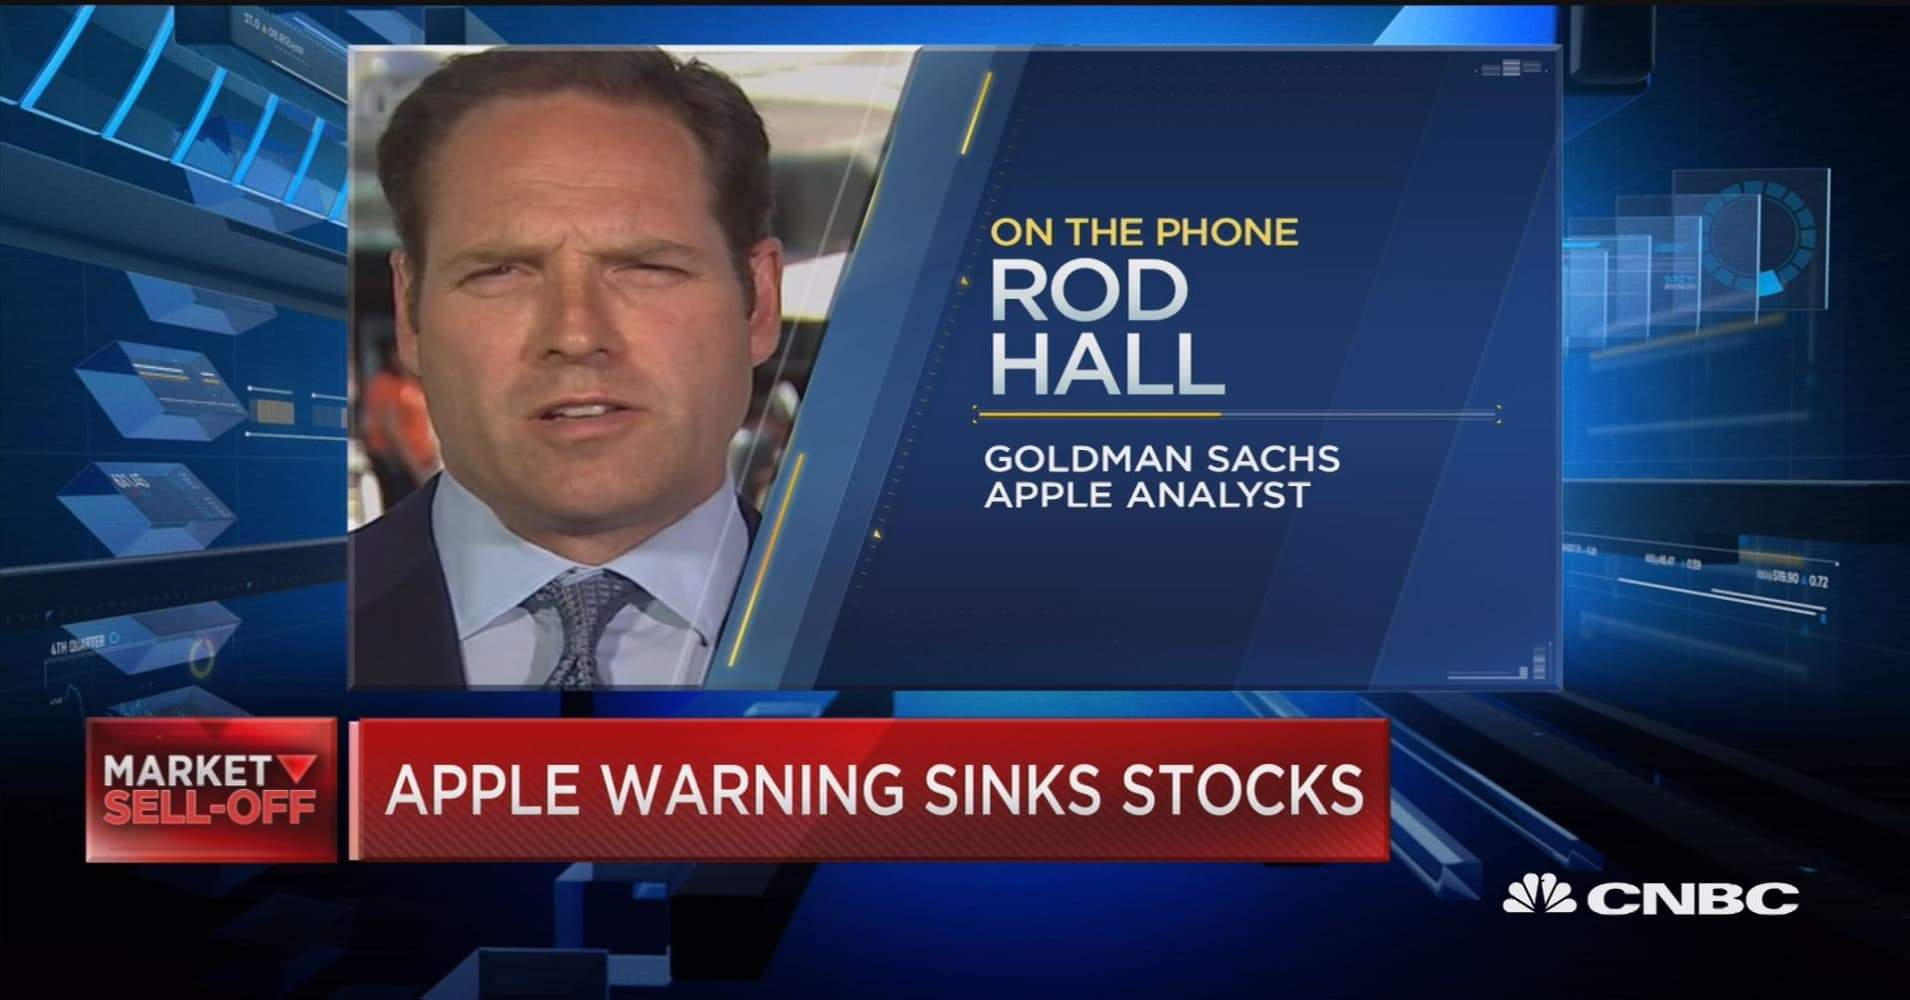 Apple's replacement demand in China has blown out, says Goldman Sach's Rod  Hall